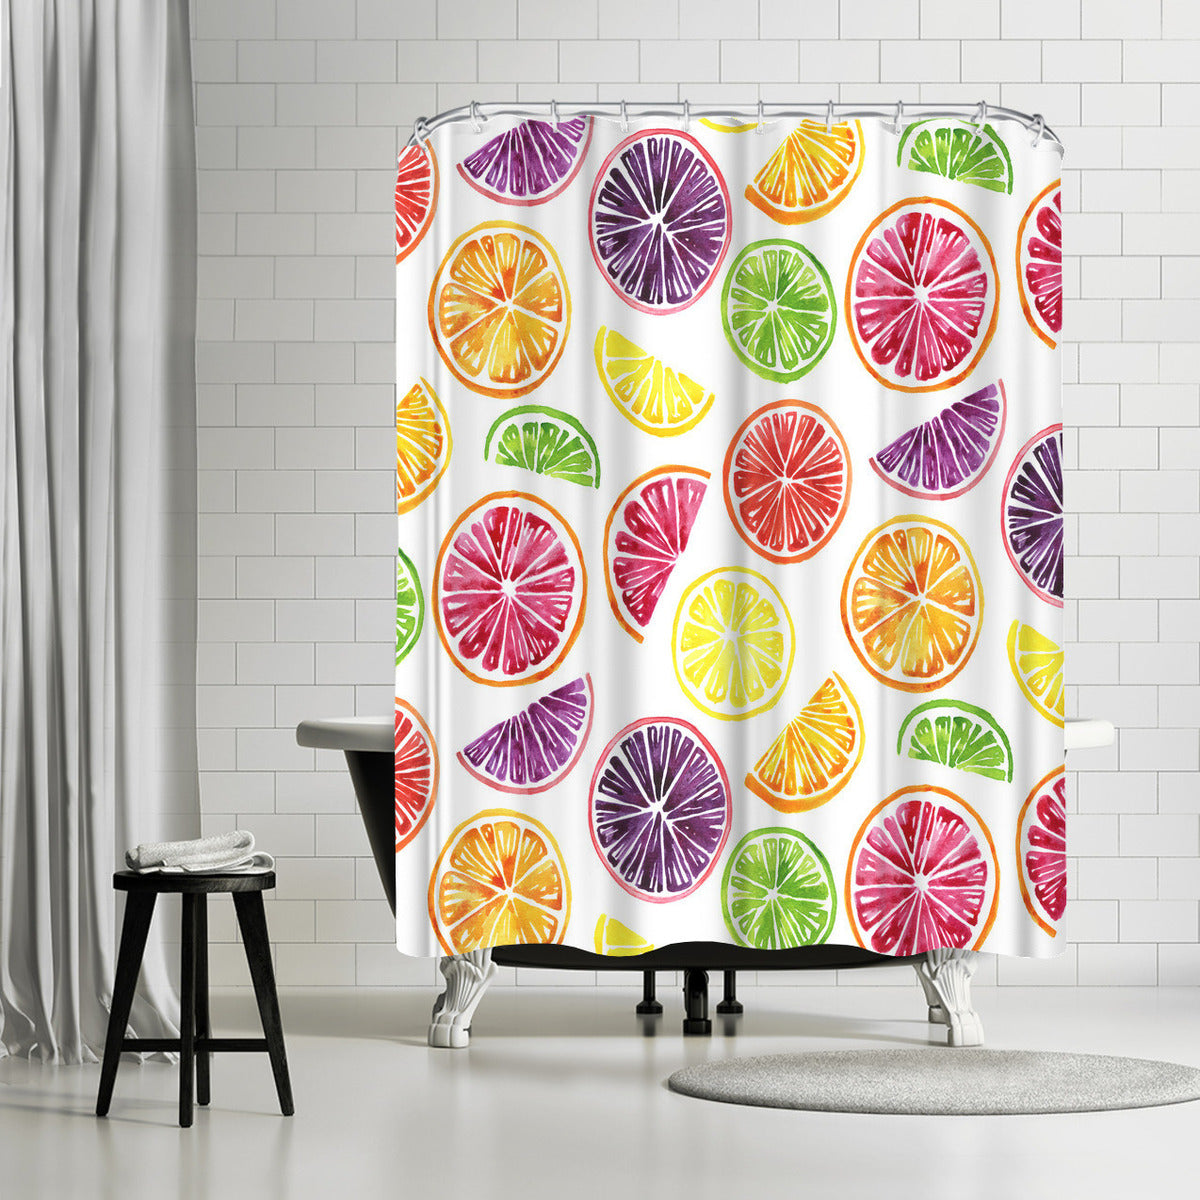 Citrus Wheels Colorful White by Sam Nagel Shower Curtain - Shower Curtain - Americanflat